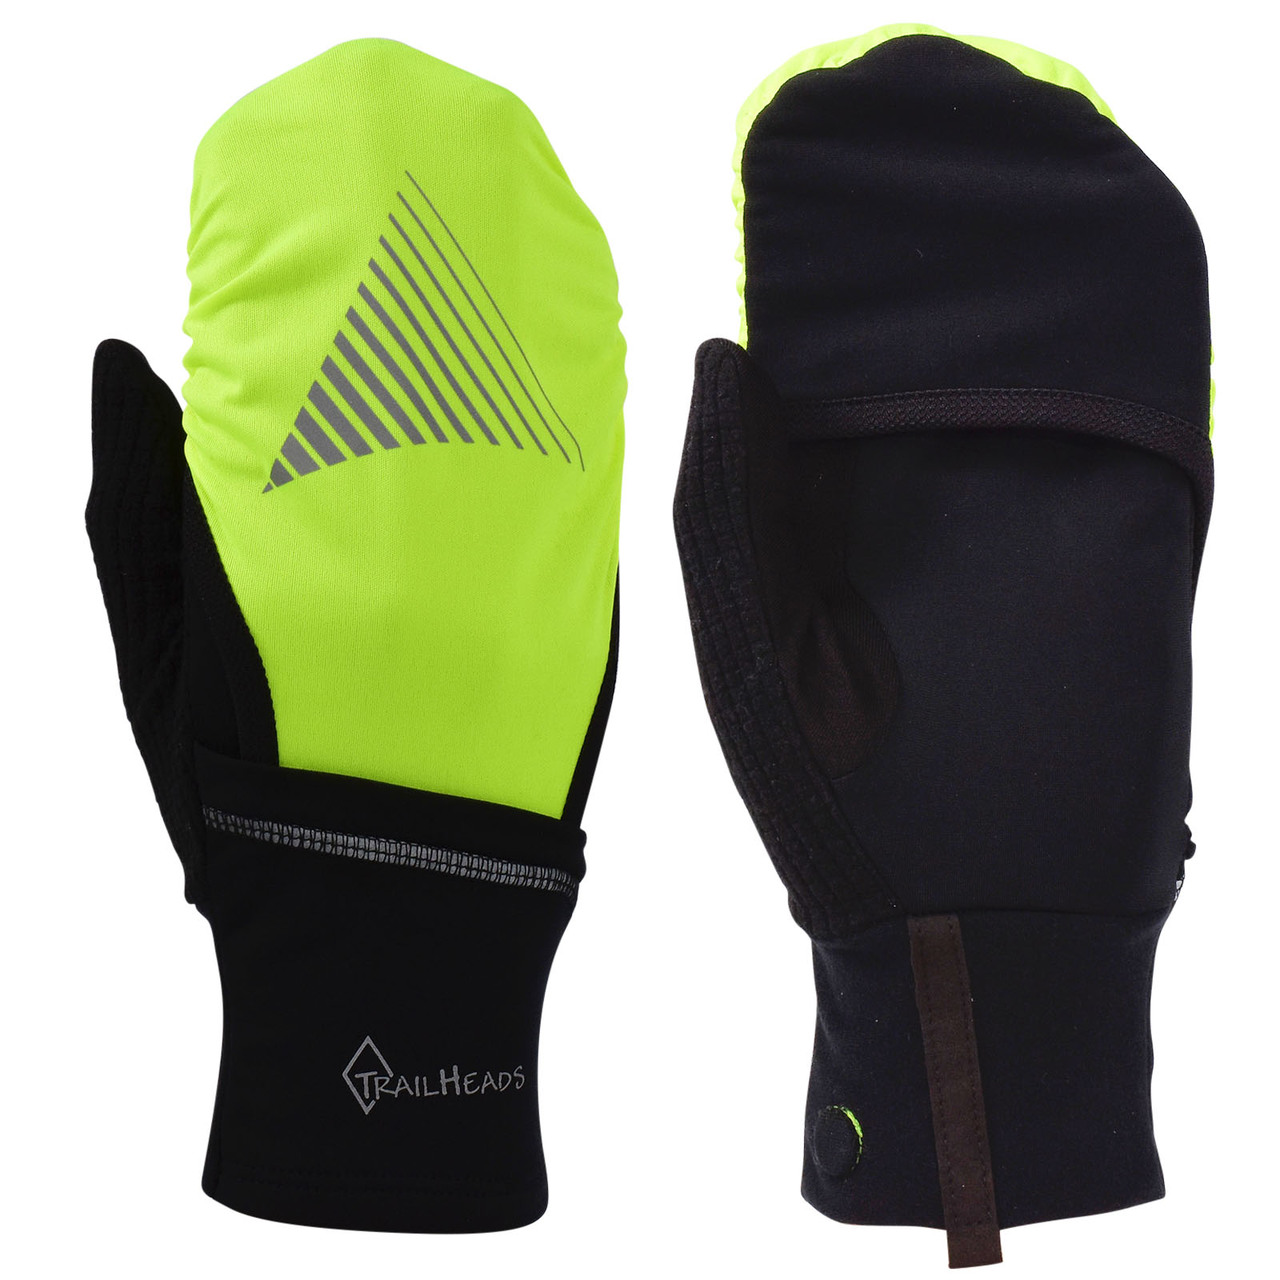 e024003c5f8 Convertible Running Gloves designed with men in mind but women will like  these too!